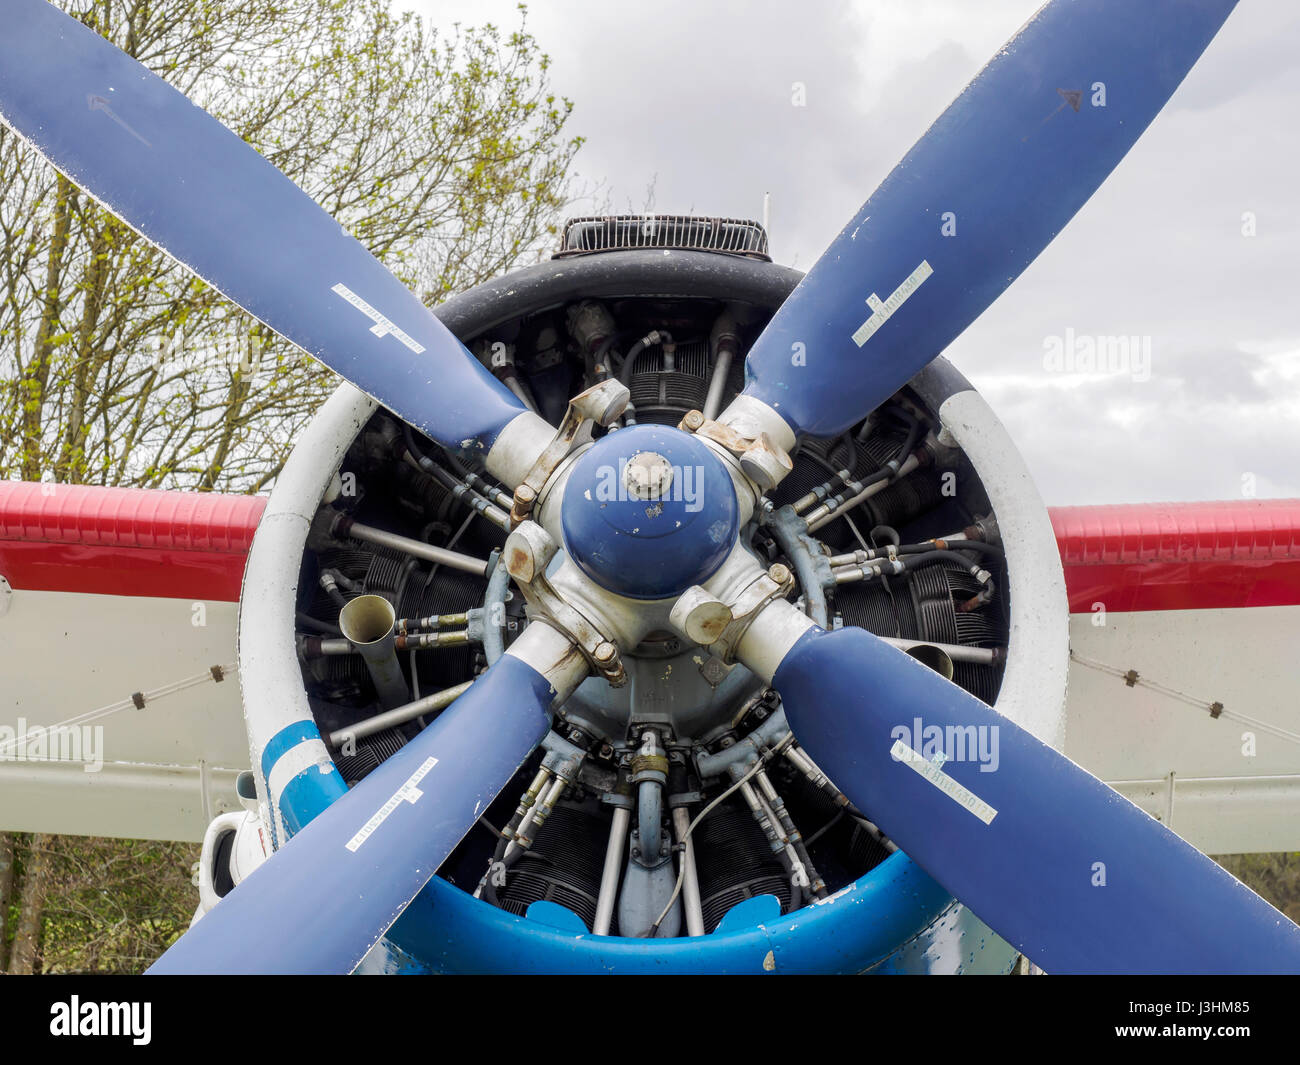 A Russian built Antonov An-2TP biplane built in 1949 for passenger and freight transport. This privcately owned - Stock Image